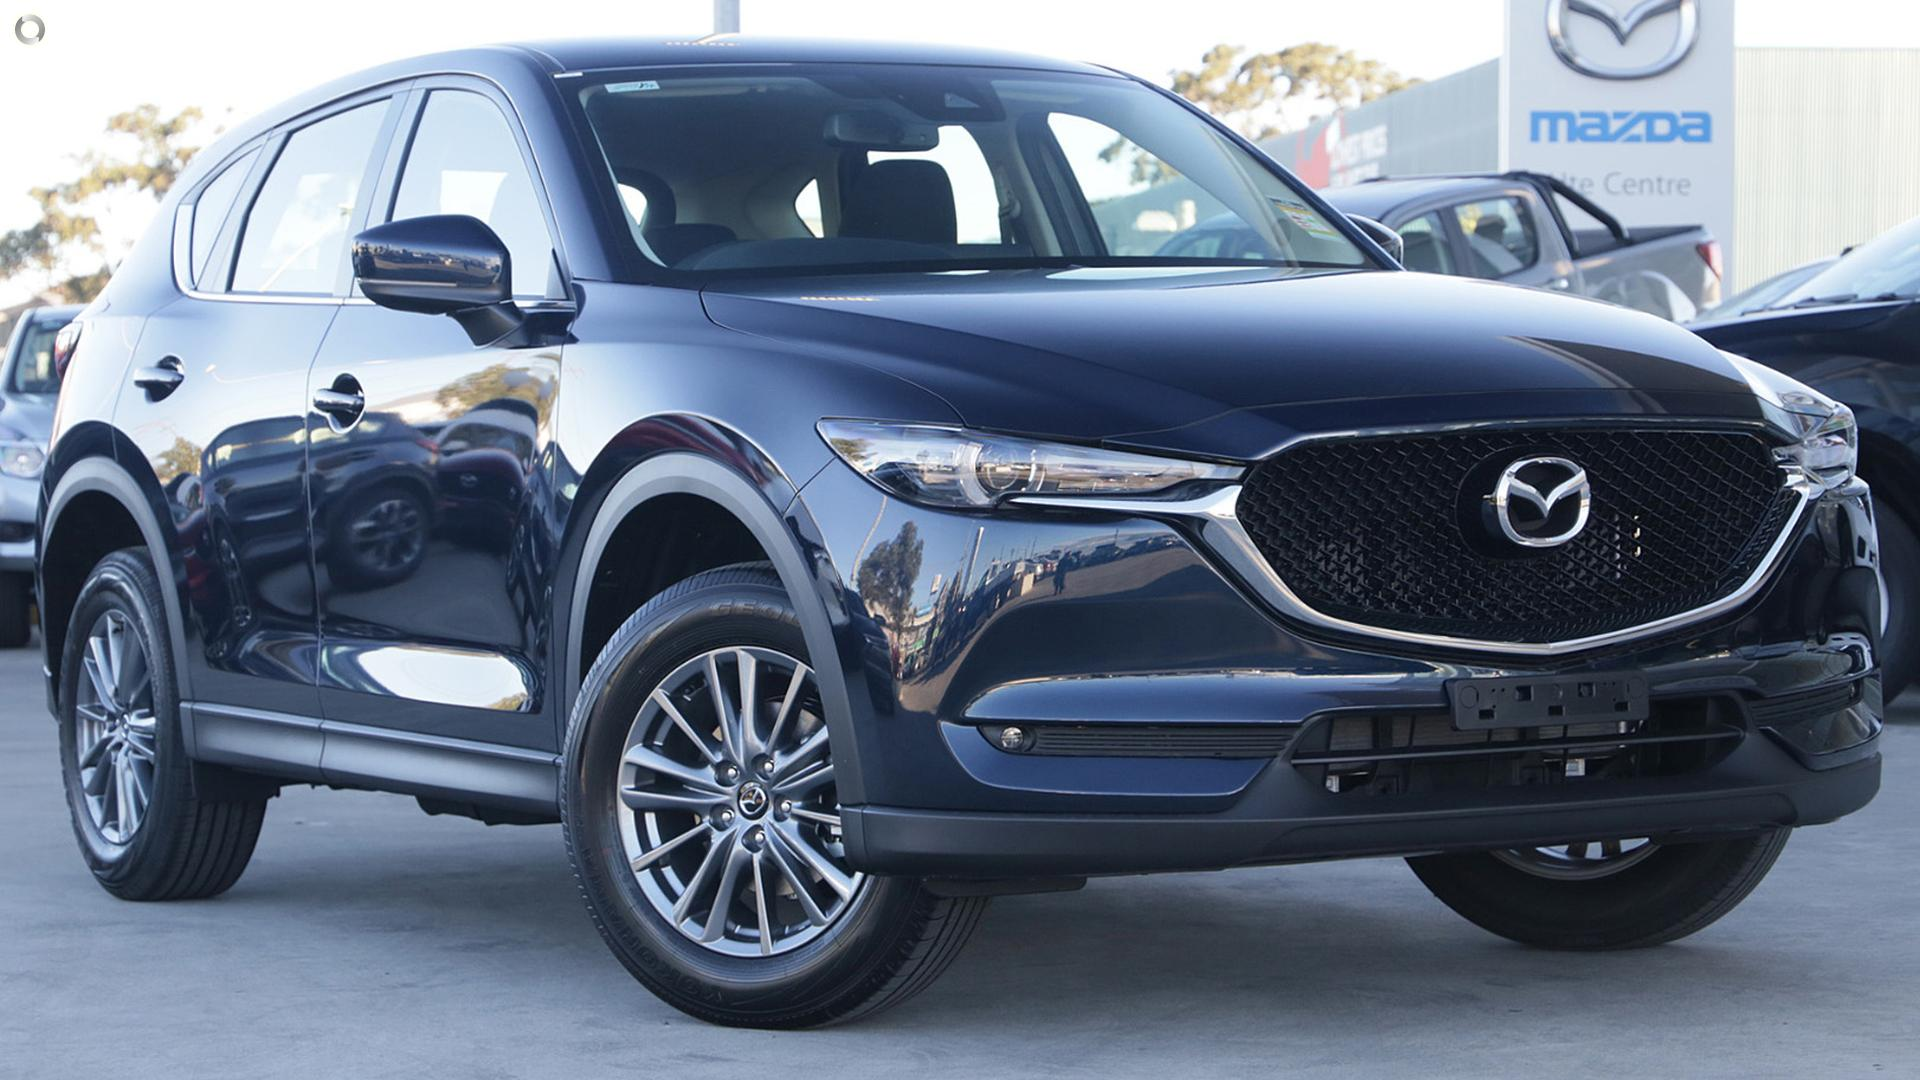 2018 Mazda Cx-5 KF Series